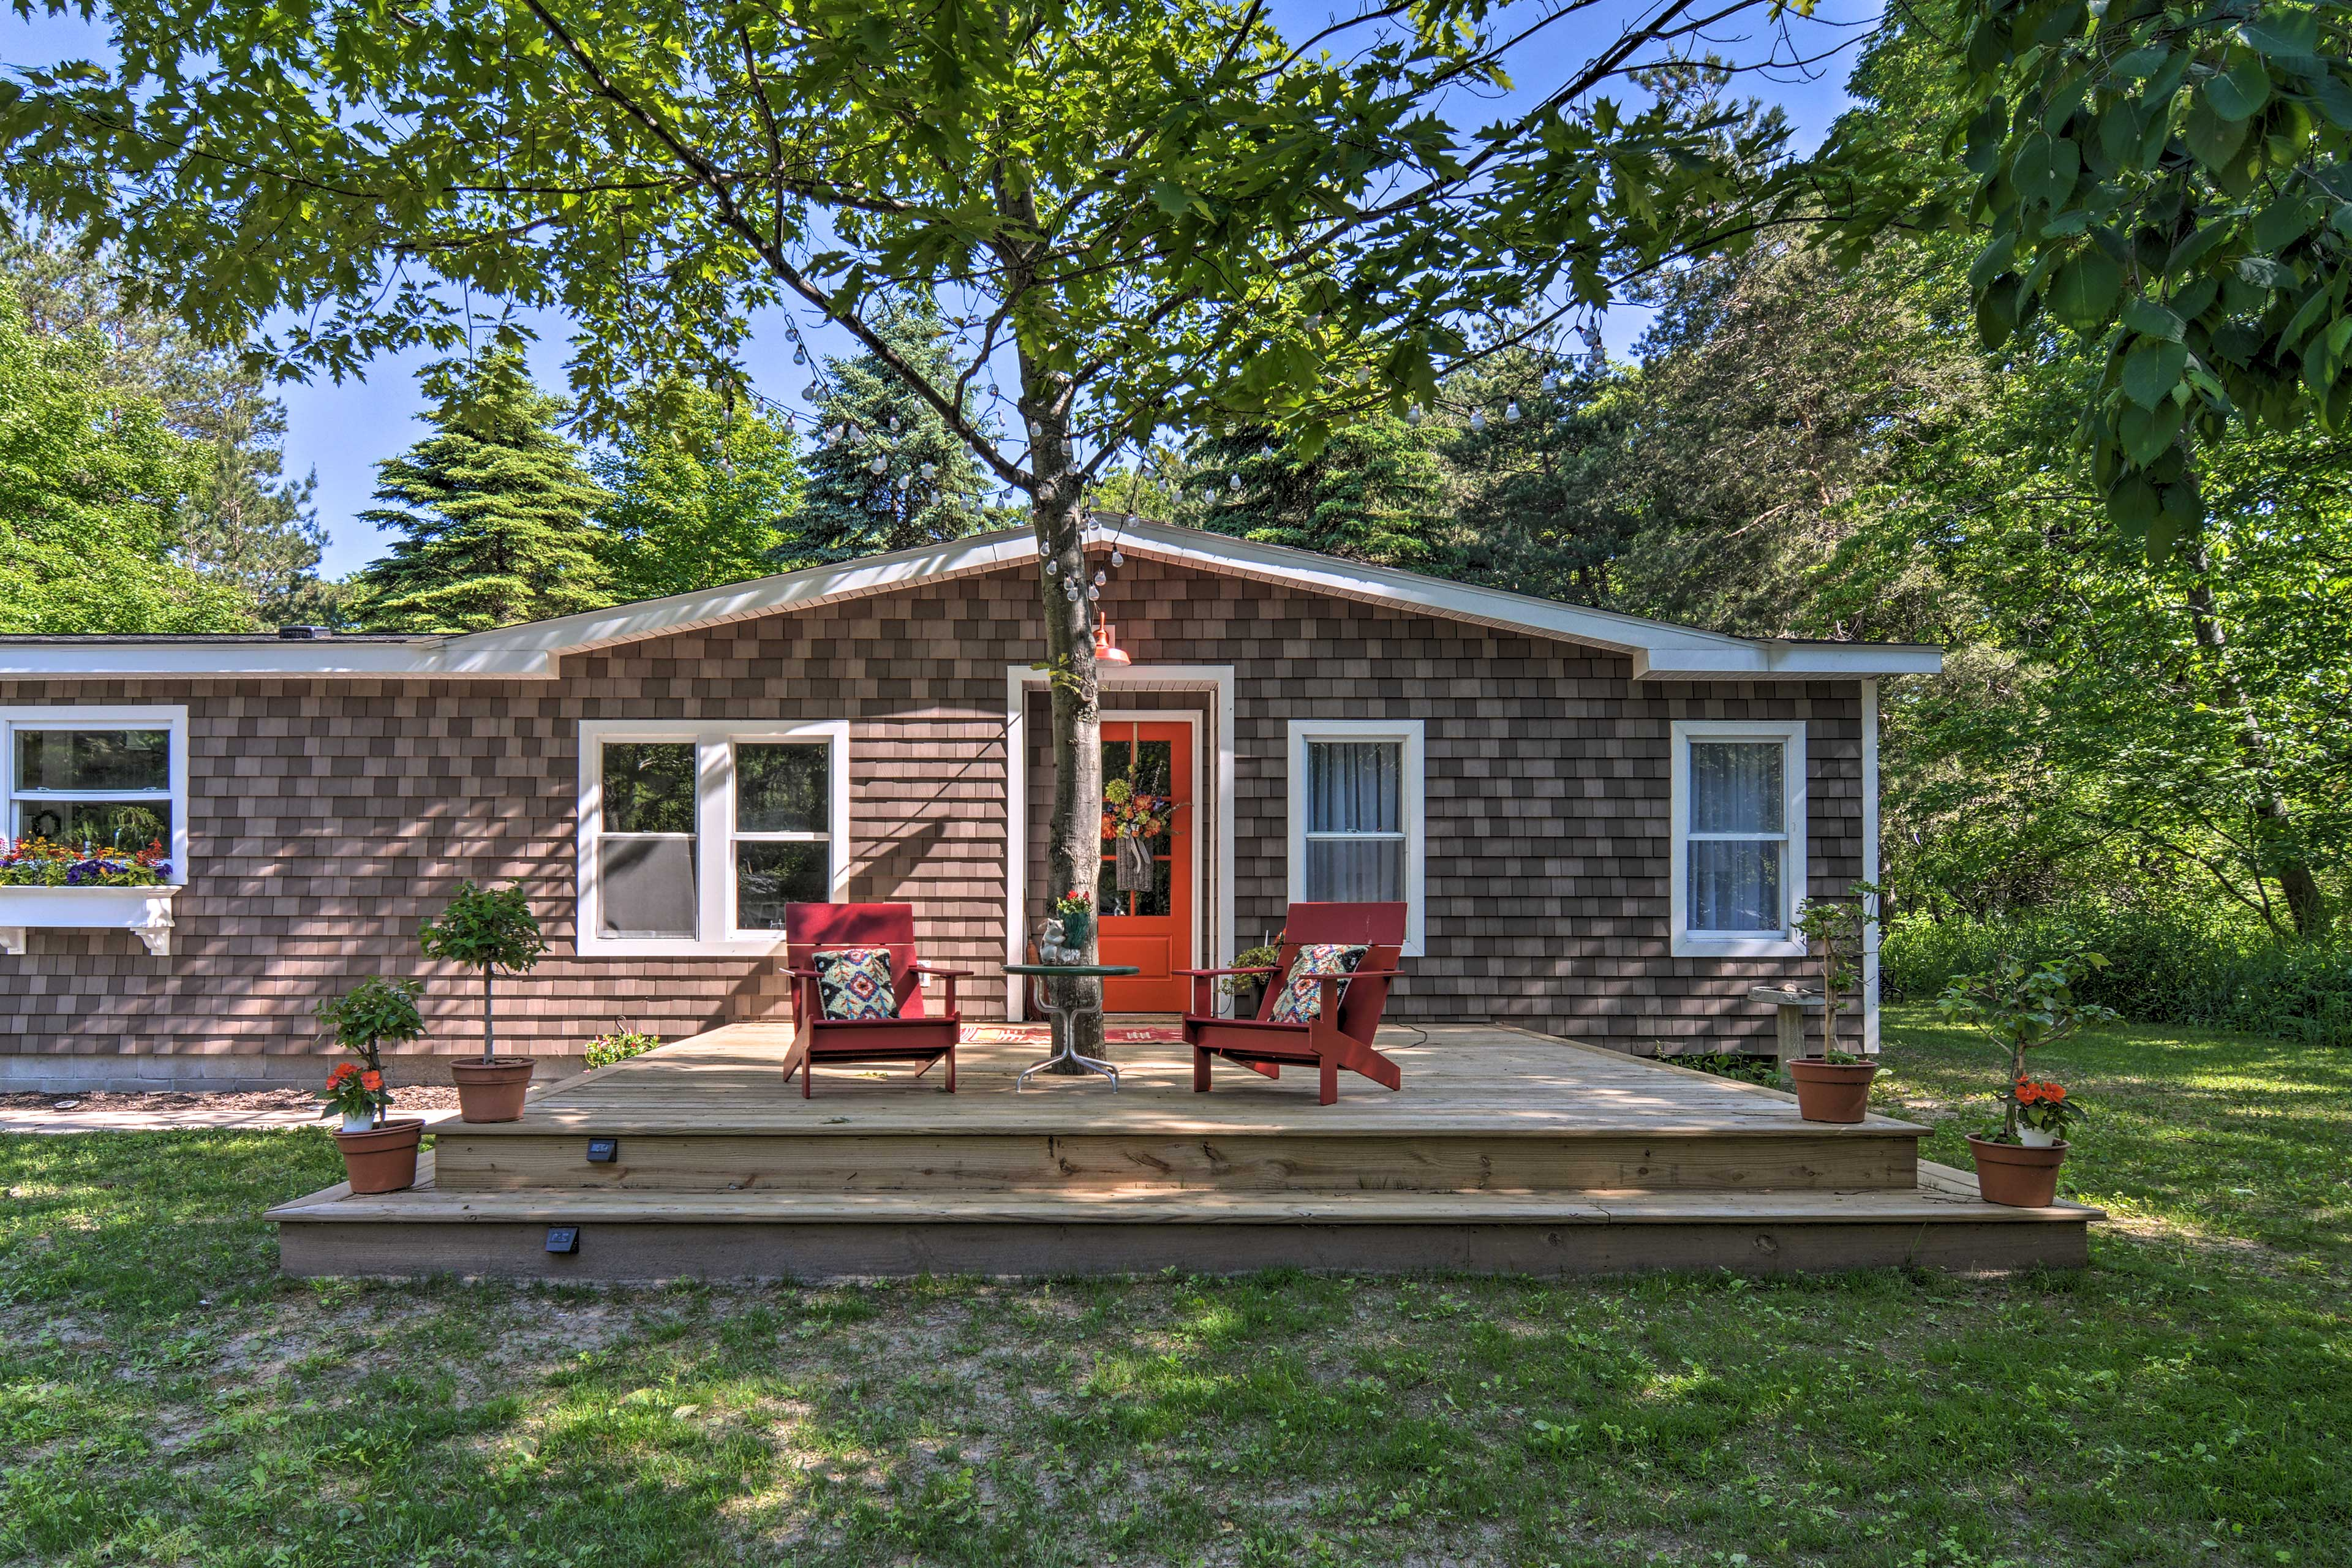 You'd be remiss to miss out on this charming lakeside retreat!